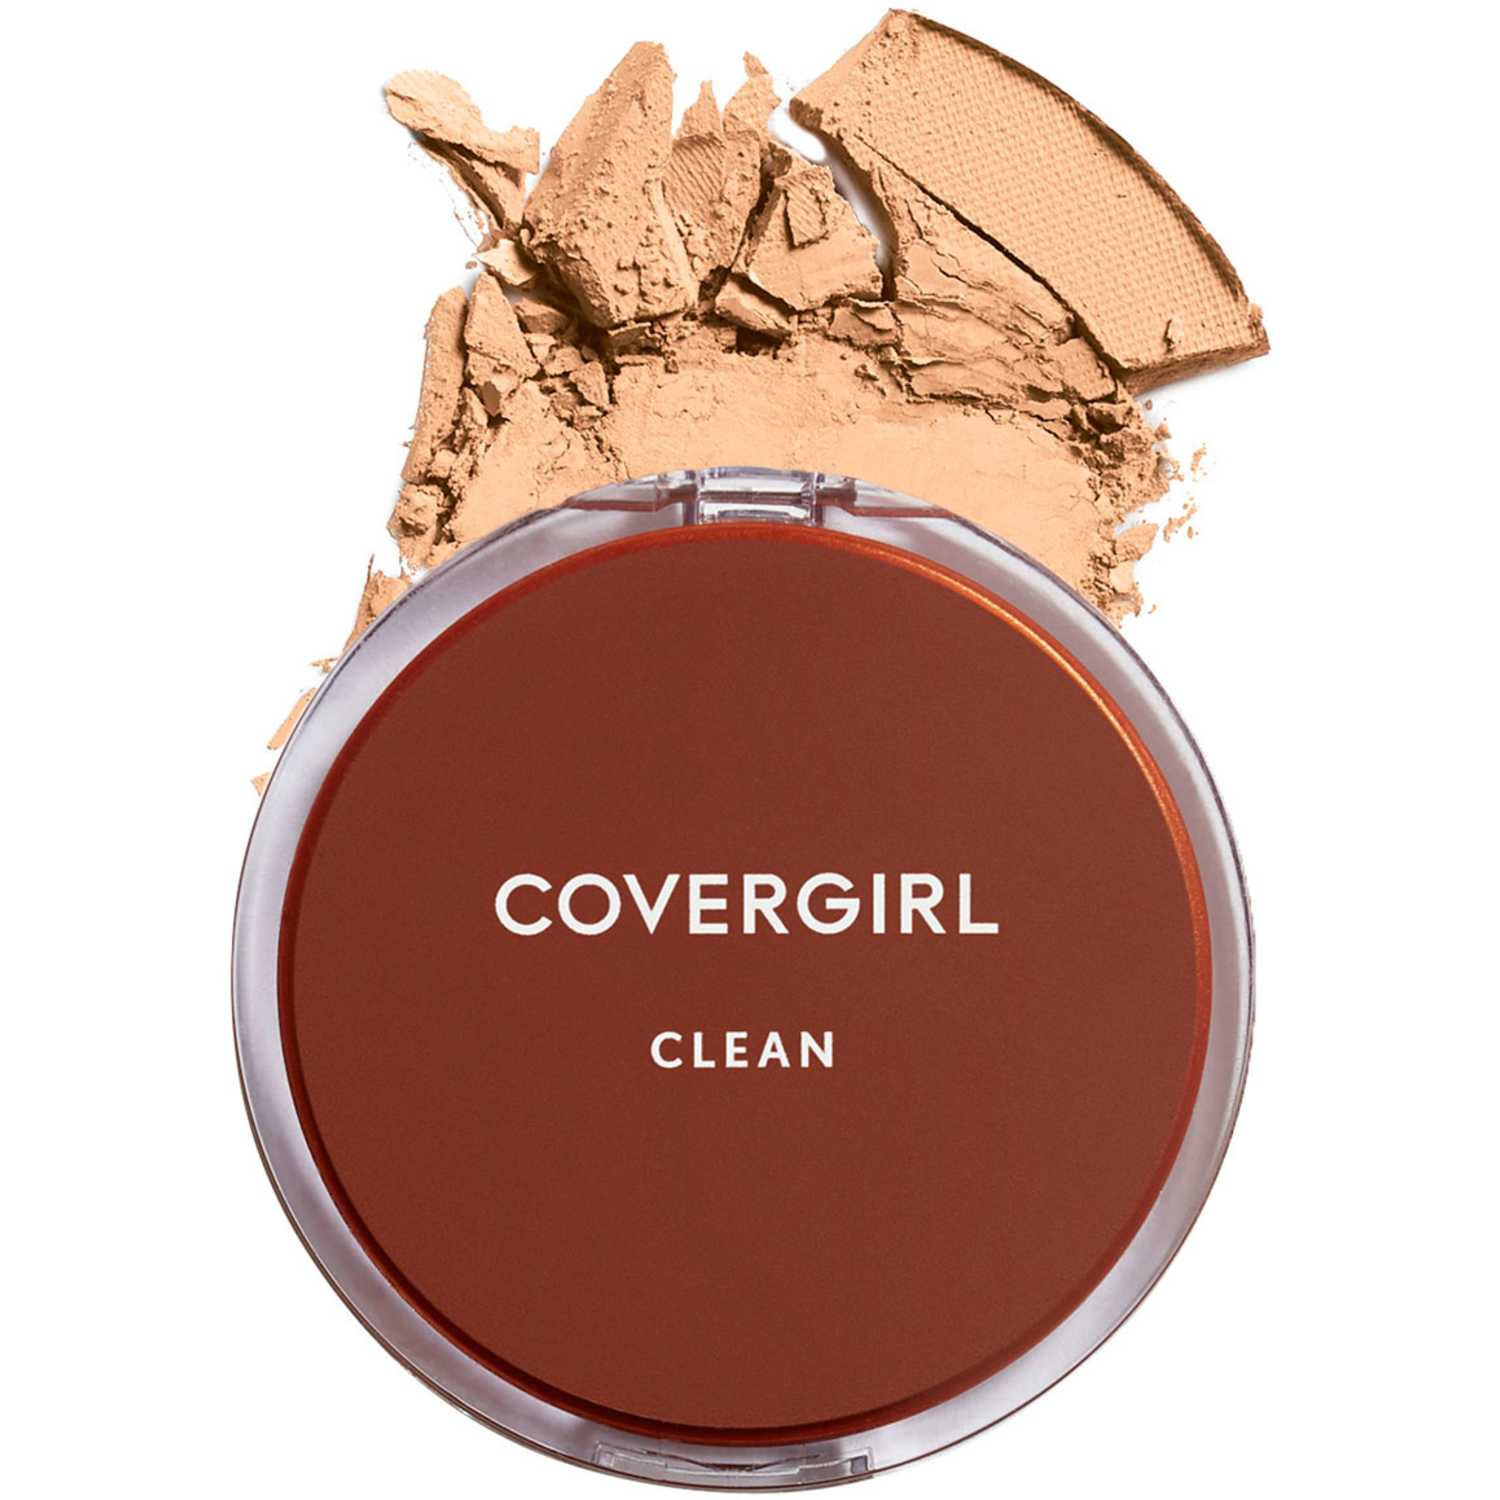 Covergirl Polvos Clean Natural Beige Correctores